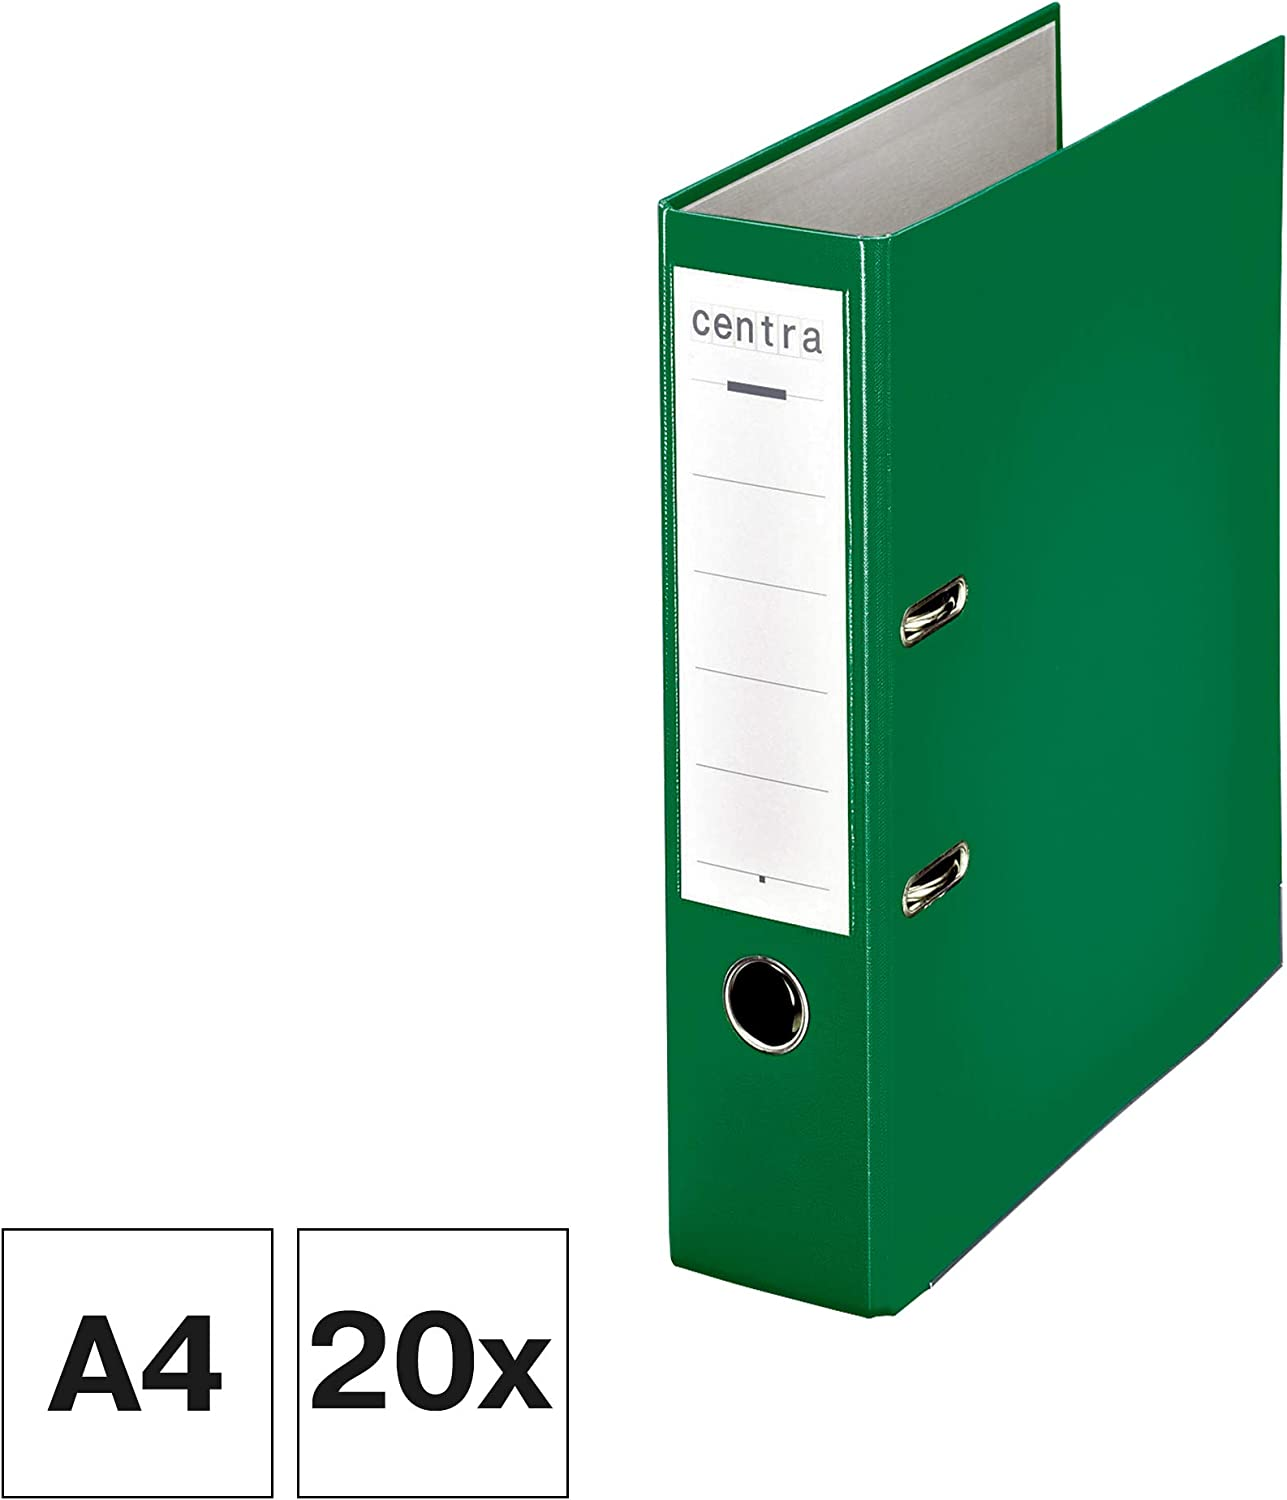 Green Pack of 20 Centra Chromos A4 80mm Lever Arch File